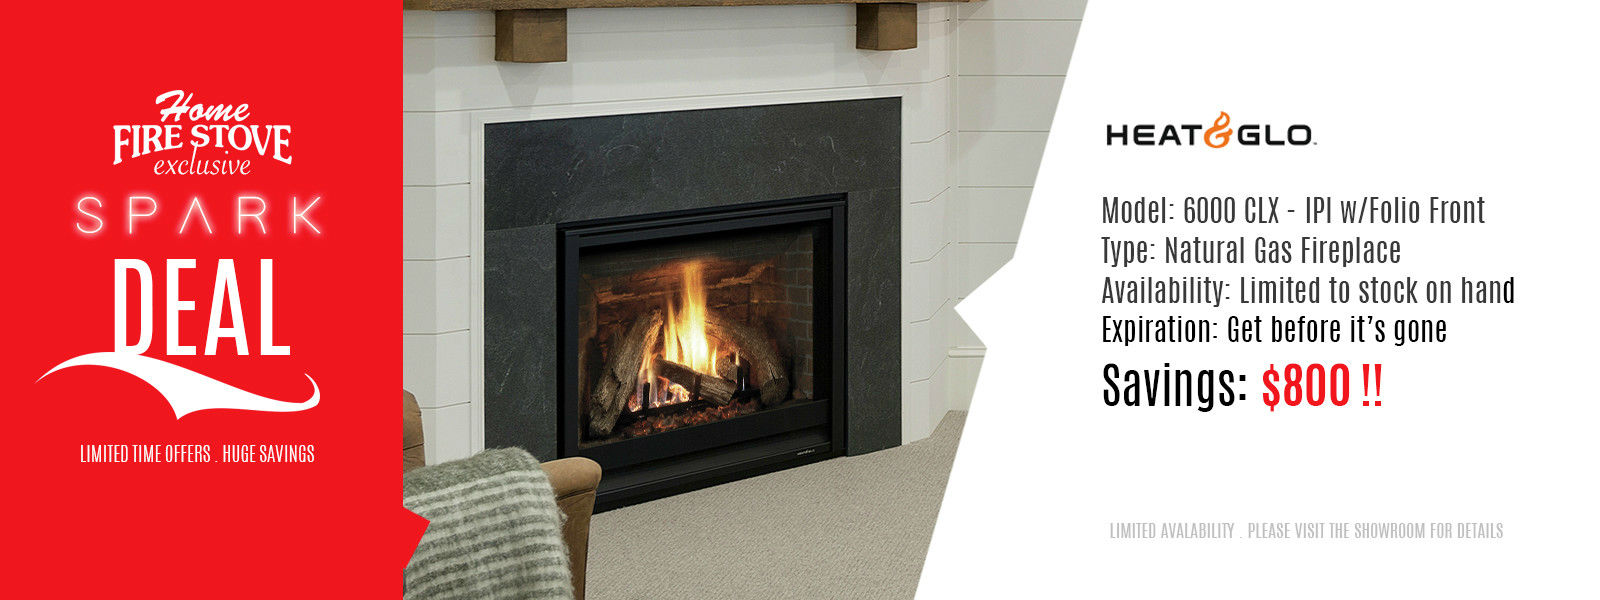 ON Sale at Home Fire Stove Salem, Model: Heat n Glo 6000 CLX - IPI w/Folio Front